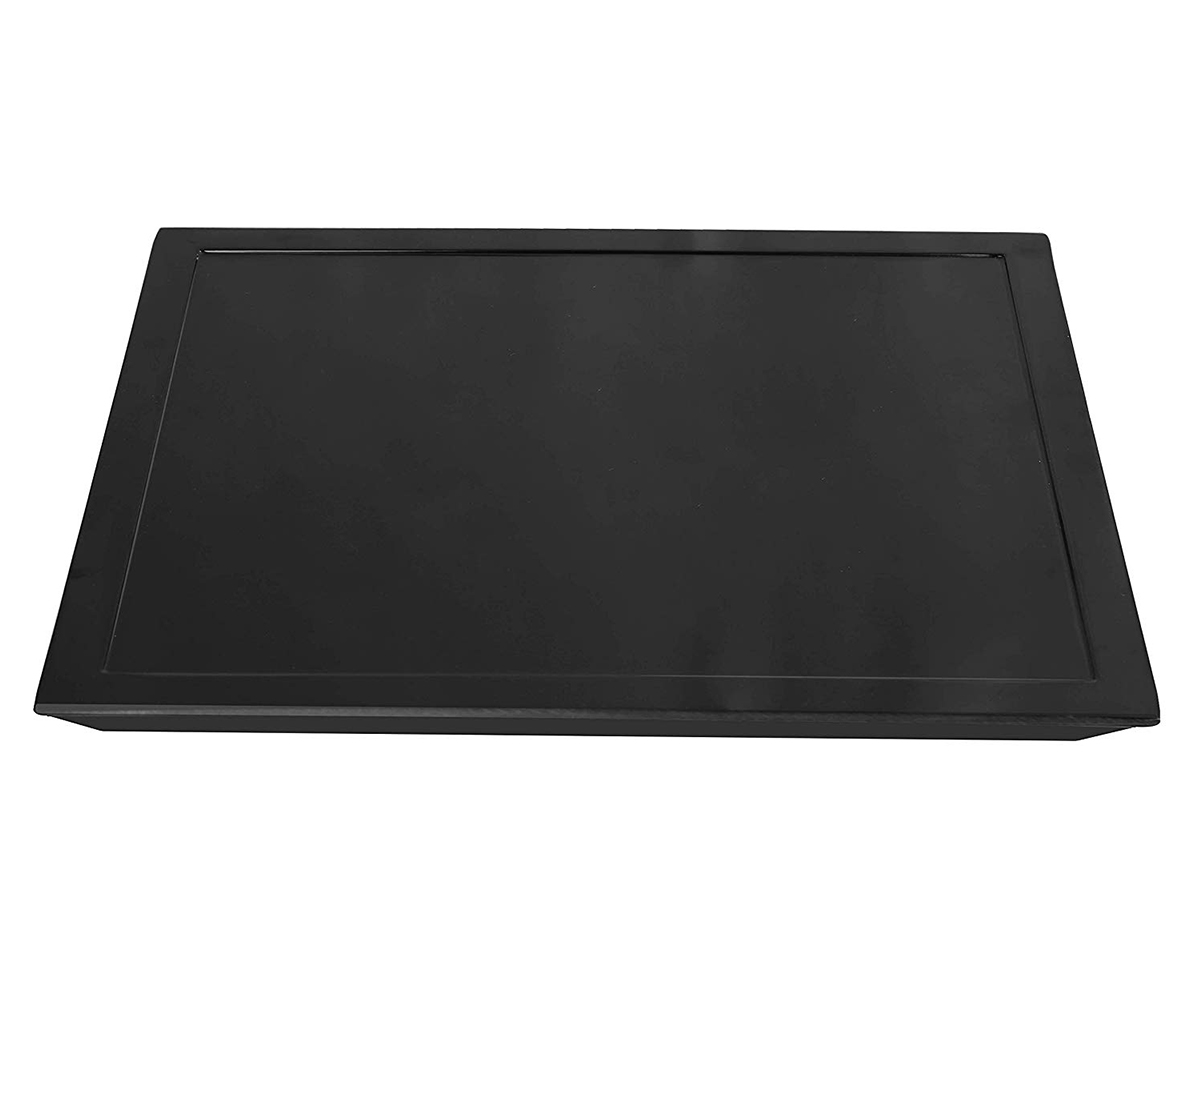 Rectangular Non-Slip Foods Drinks Serving Tray OR kettle tray